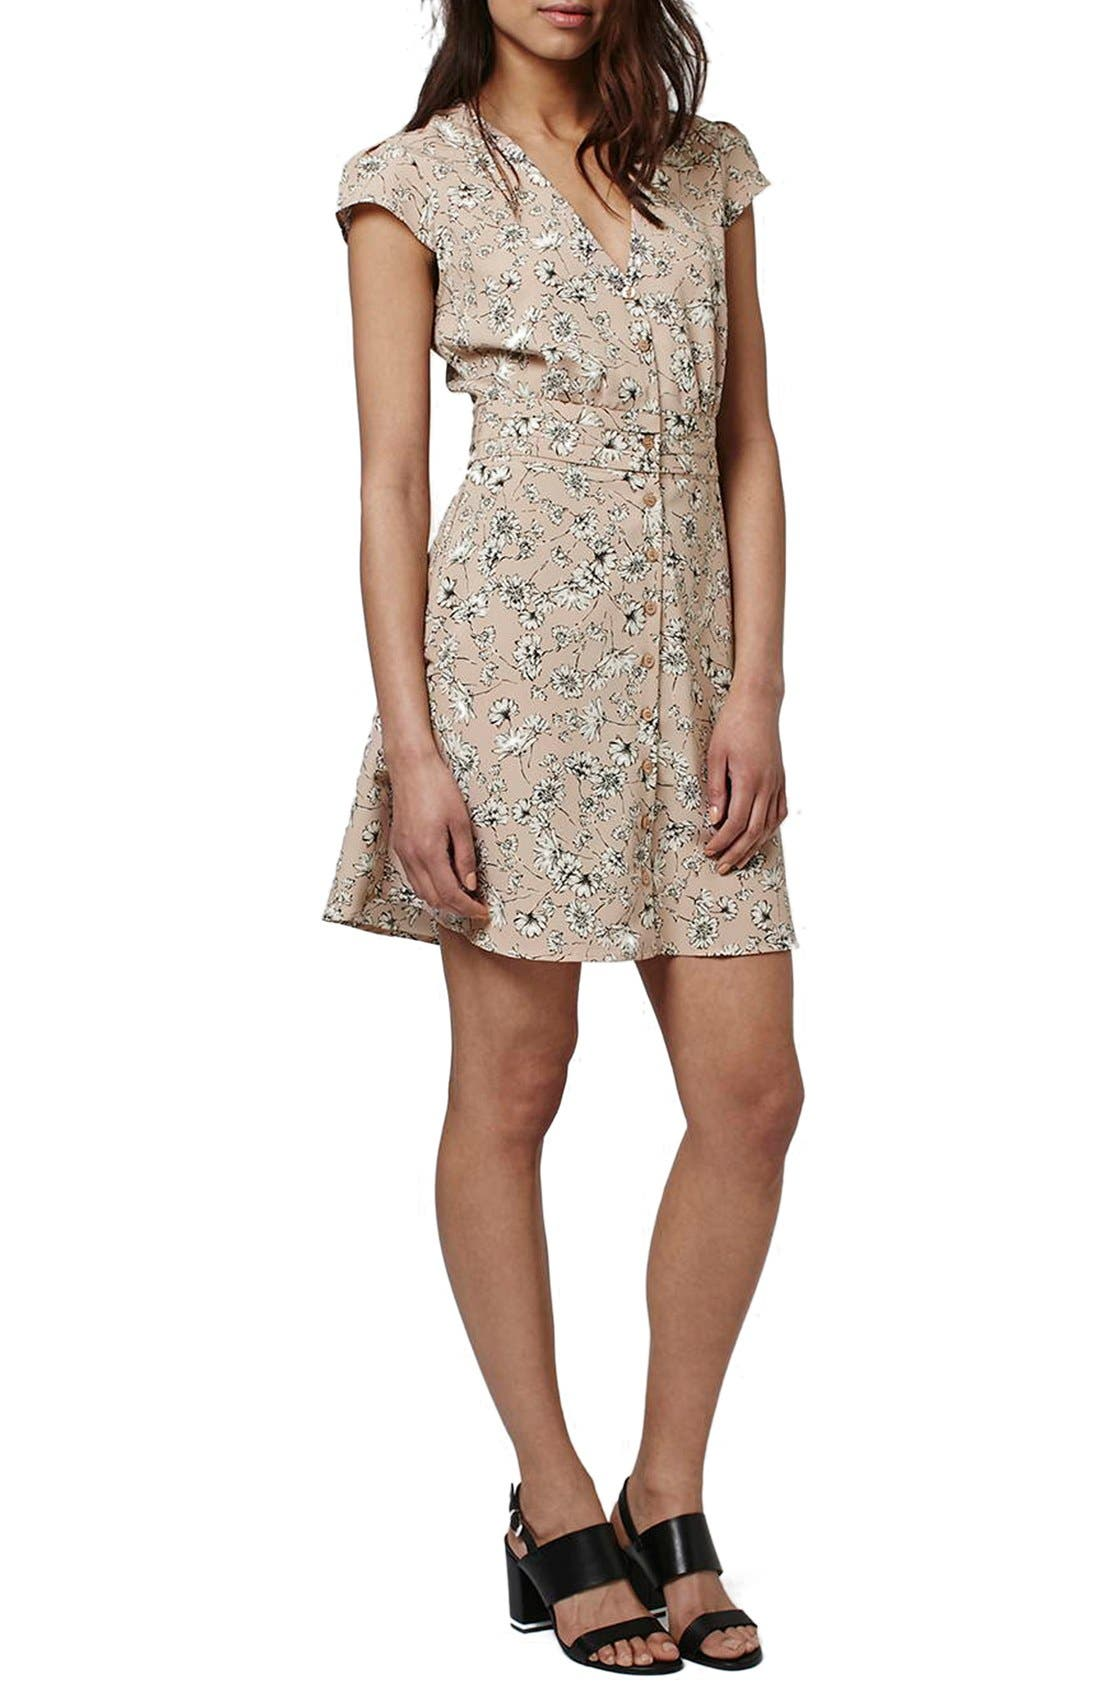 Alternate Image 1 Selected - Topshop 'Dog Daisy' Print Button Front Dress